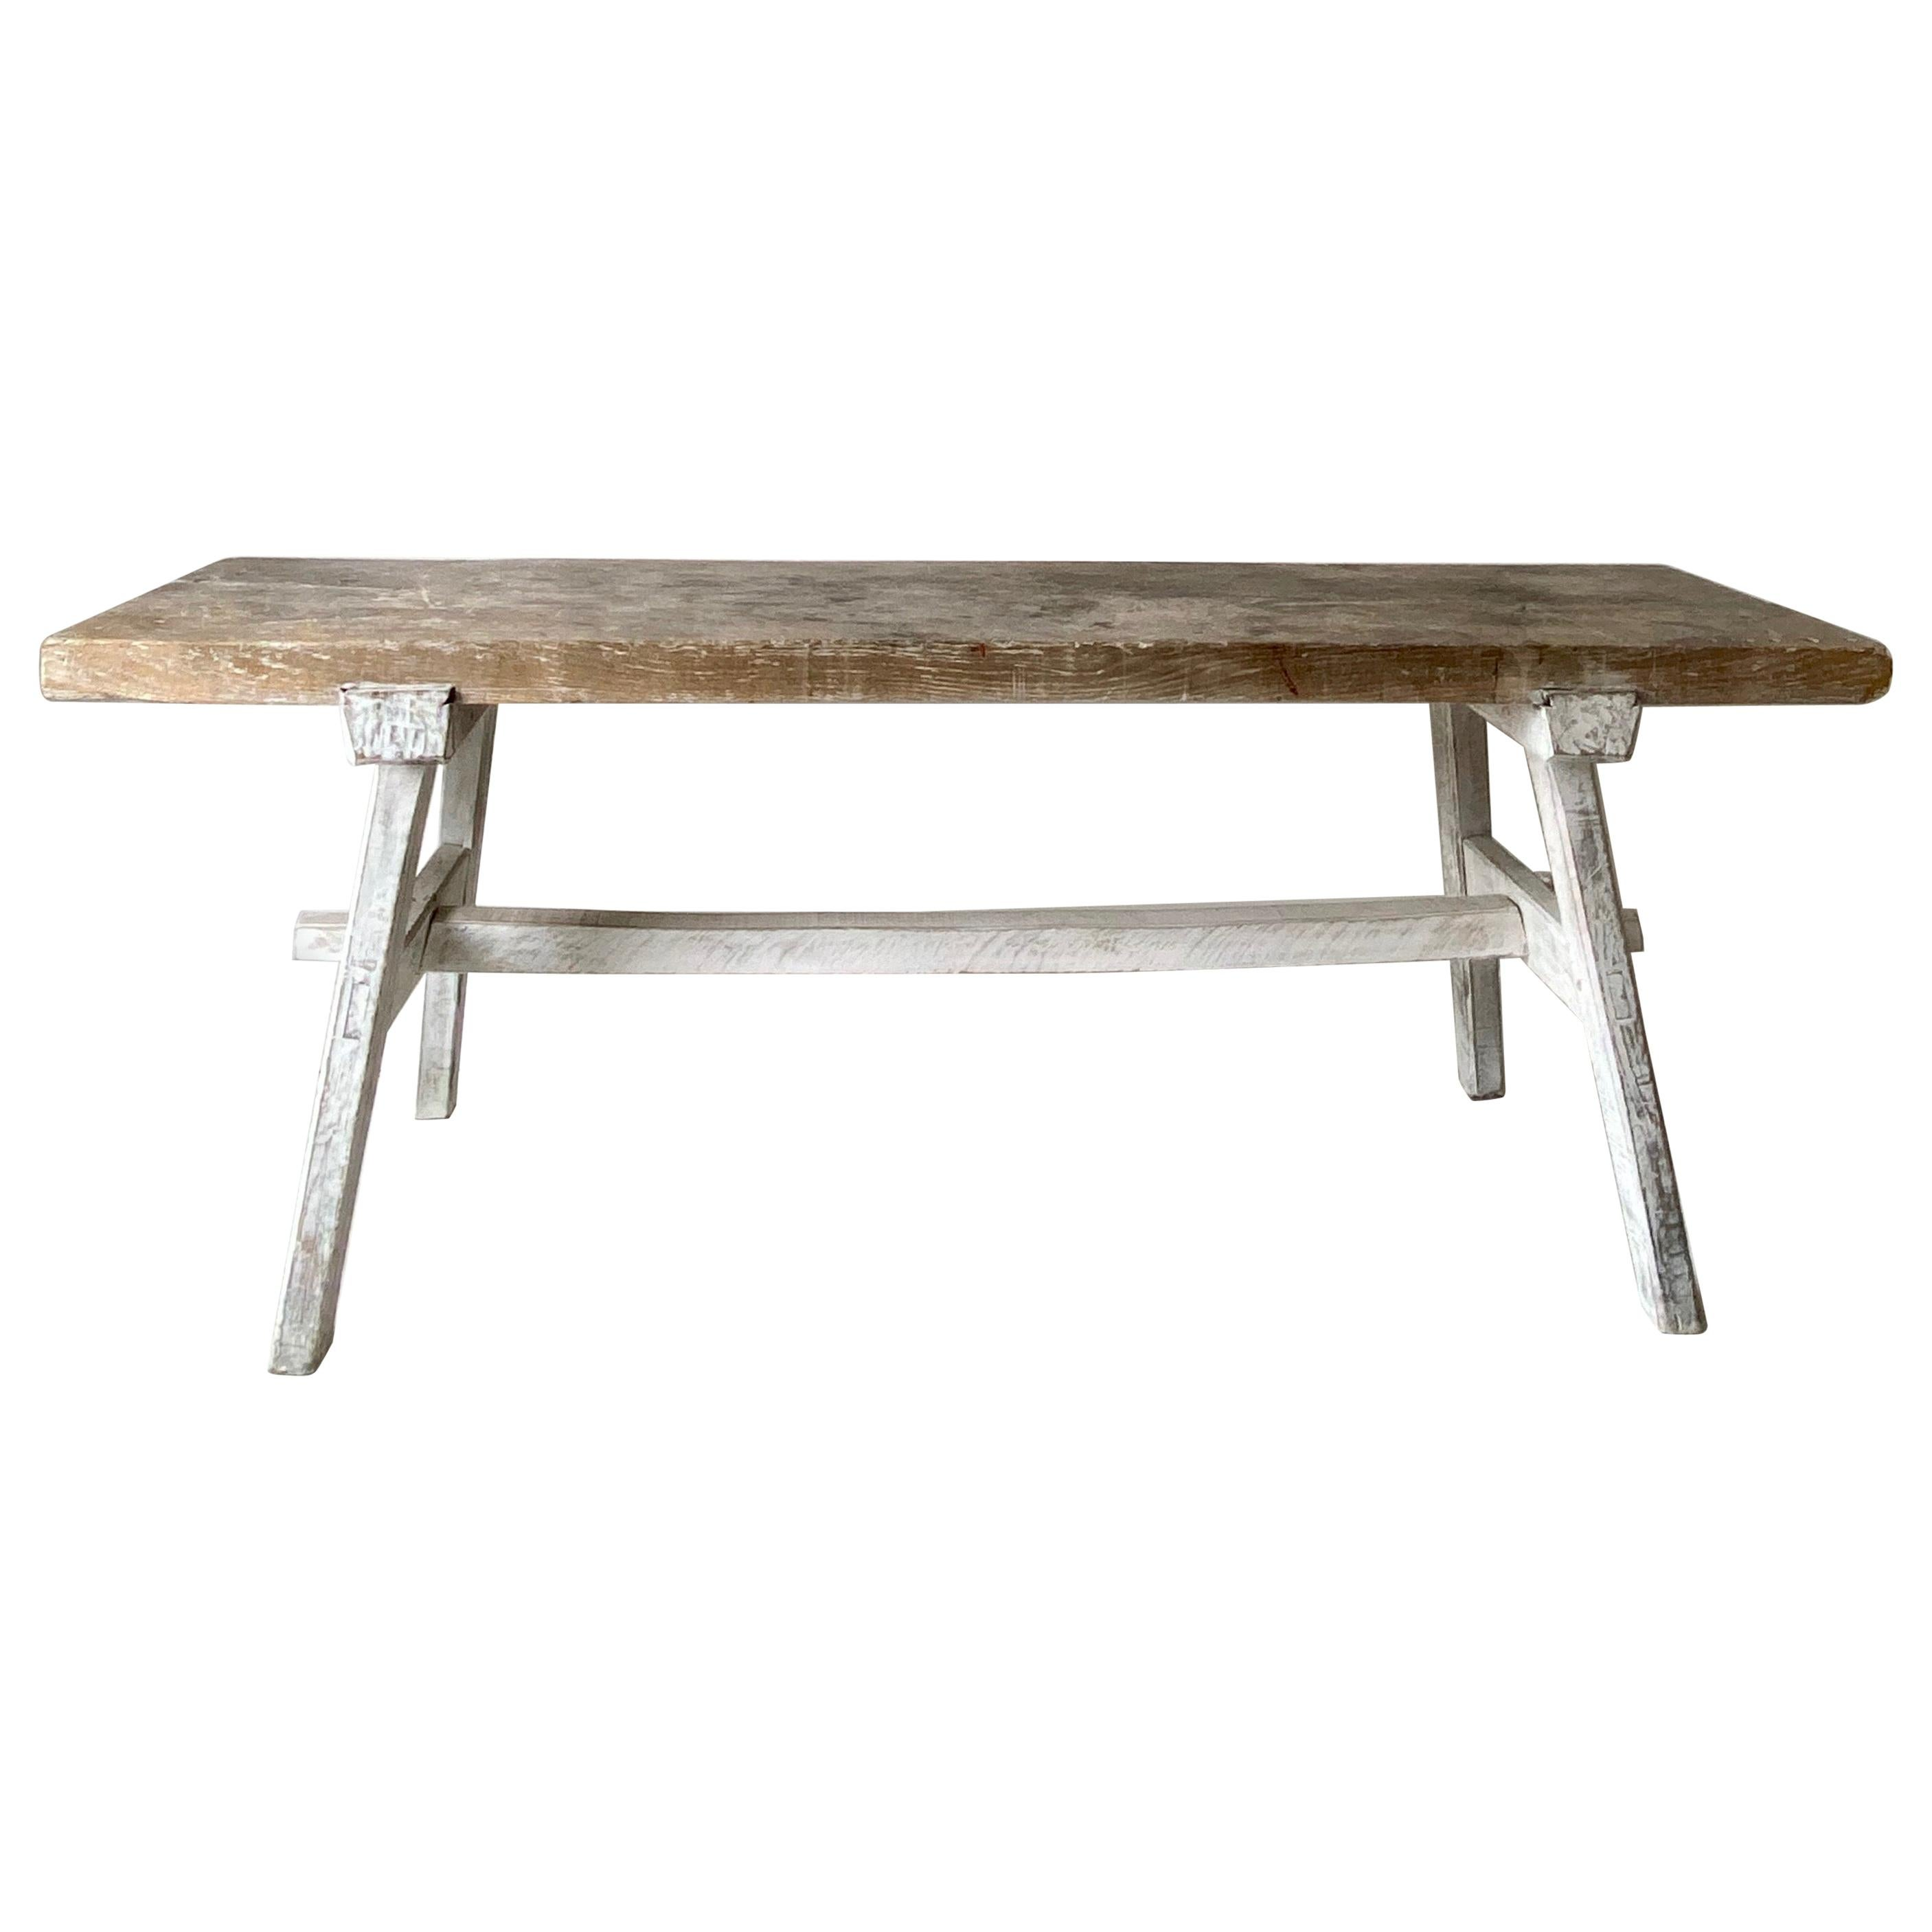 Rustic French Country Farmhouse Table Console